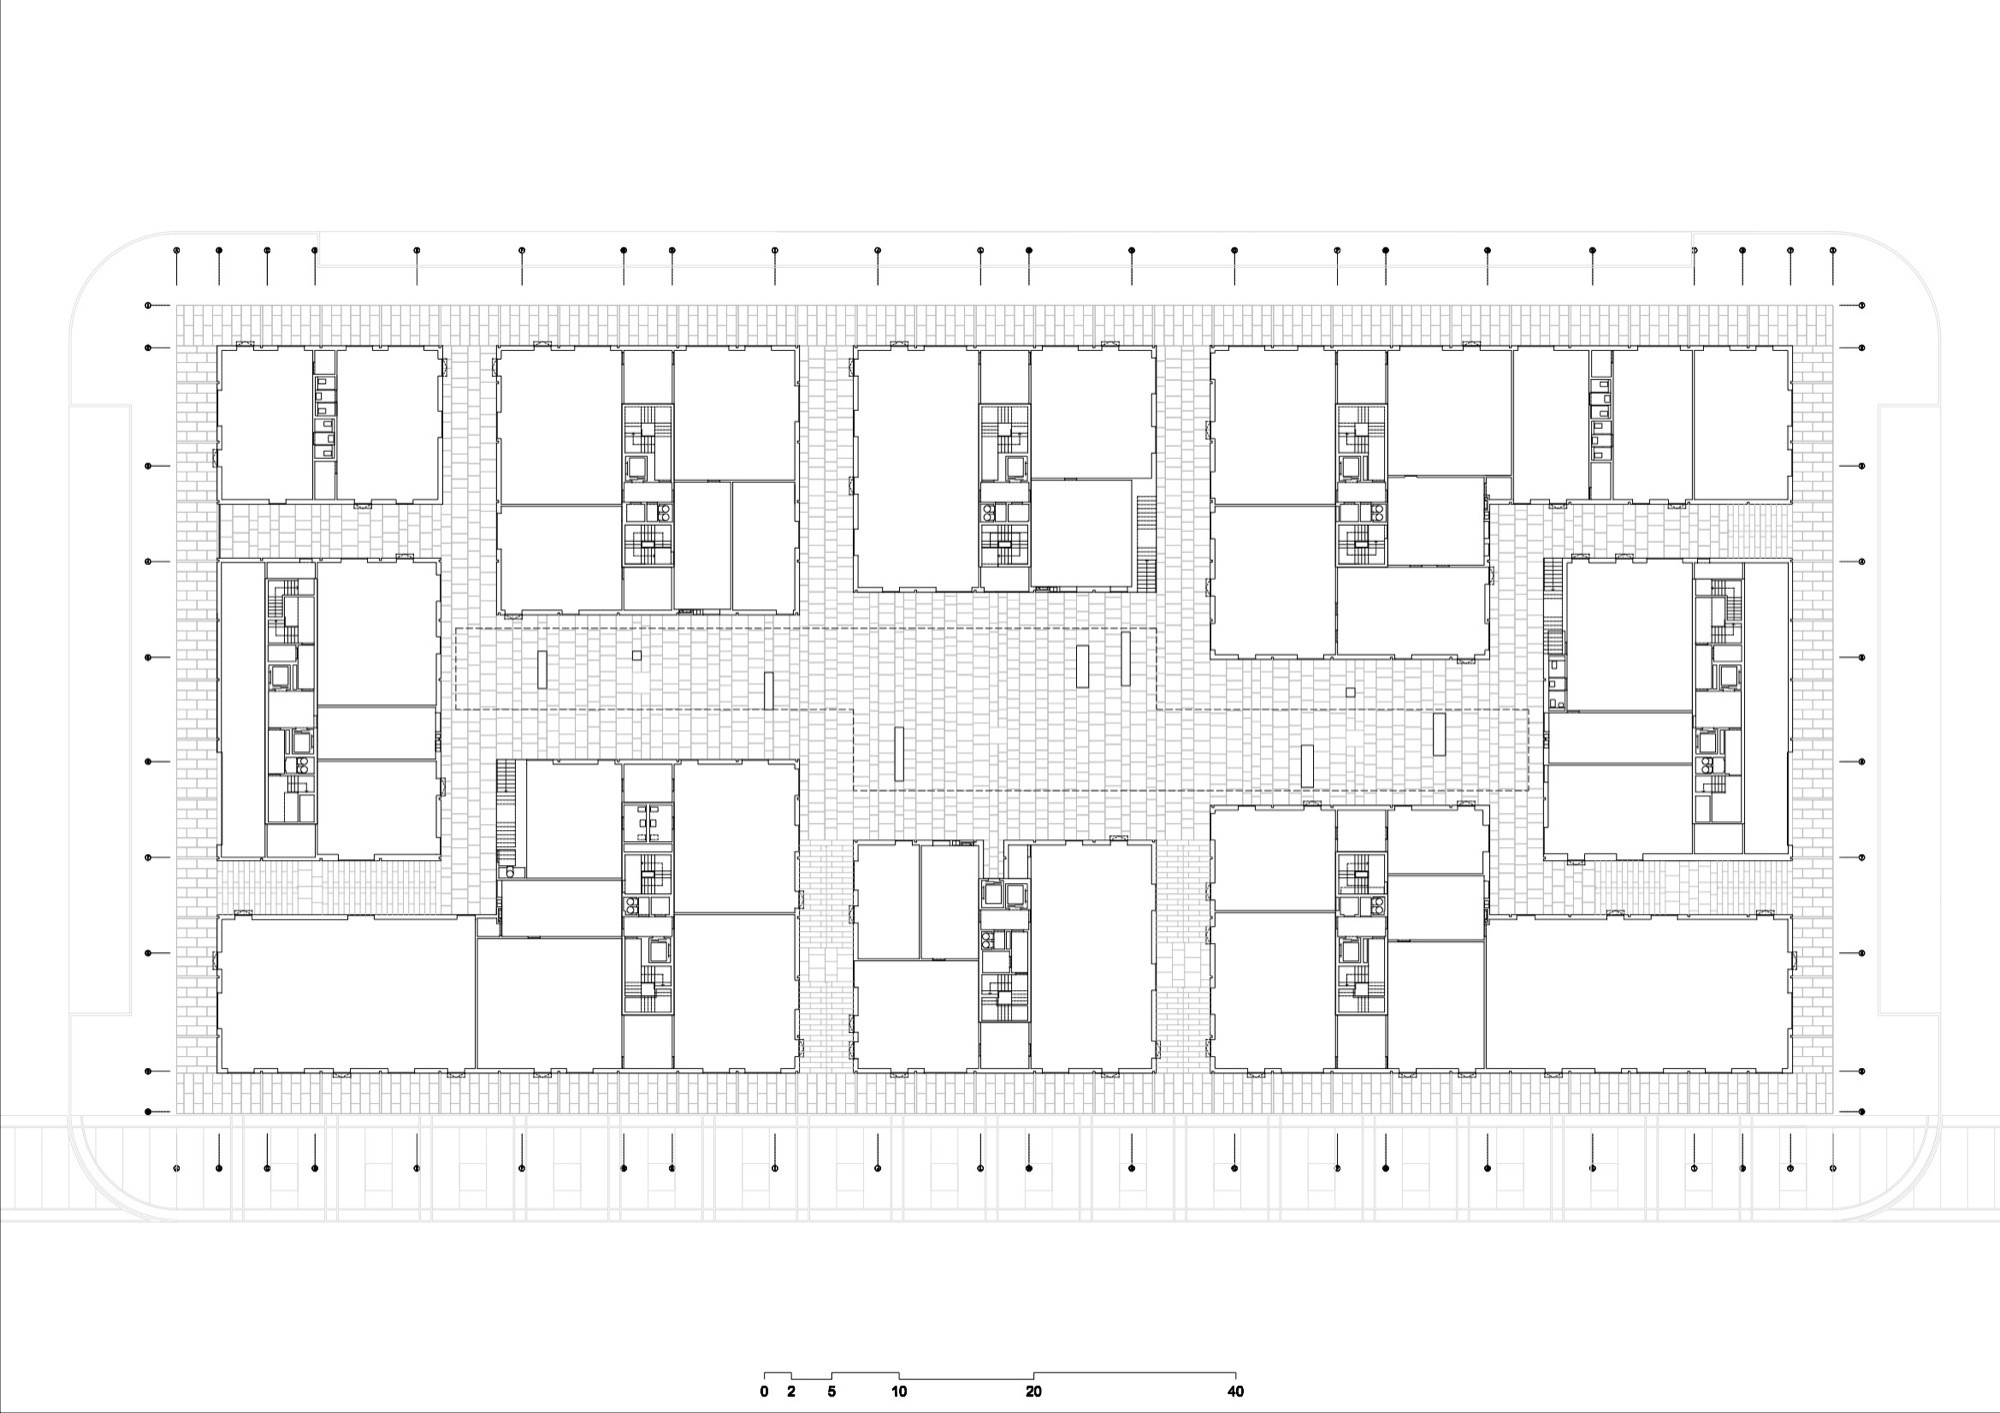 Ae552730380a54f1aa43ee36aaf6e794 moreover Floor plans for persimmon homes also Church architecture furthermore Modern House Plans in addition 510a8fbdb3fc4bfbe9000007 Ad Classics St Johns Abbey Church Marcel Breuer Plan. on courtyard house plans